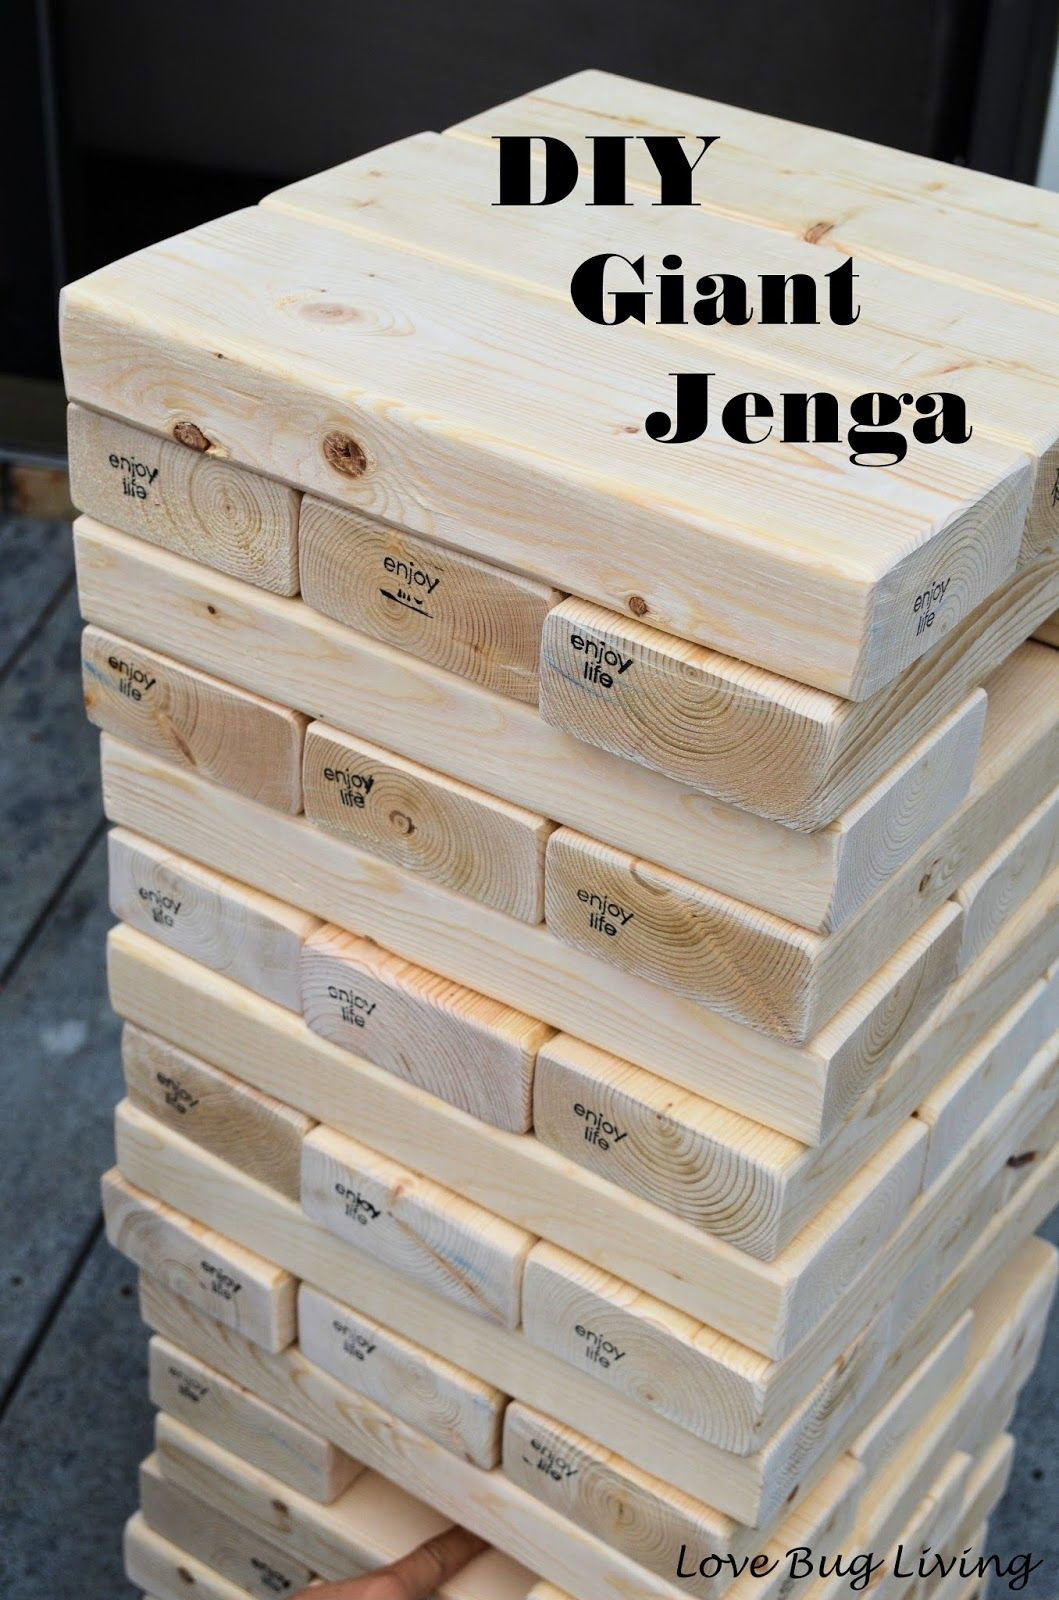 Giant jenga game pictures photos and images for facebook tumblr giant jenga game solutioingenieria Gallery